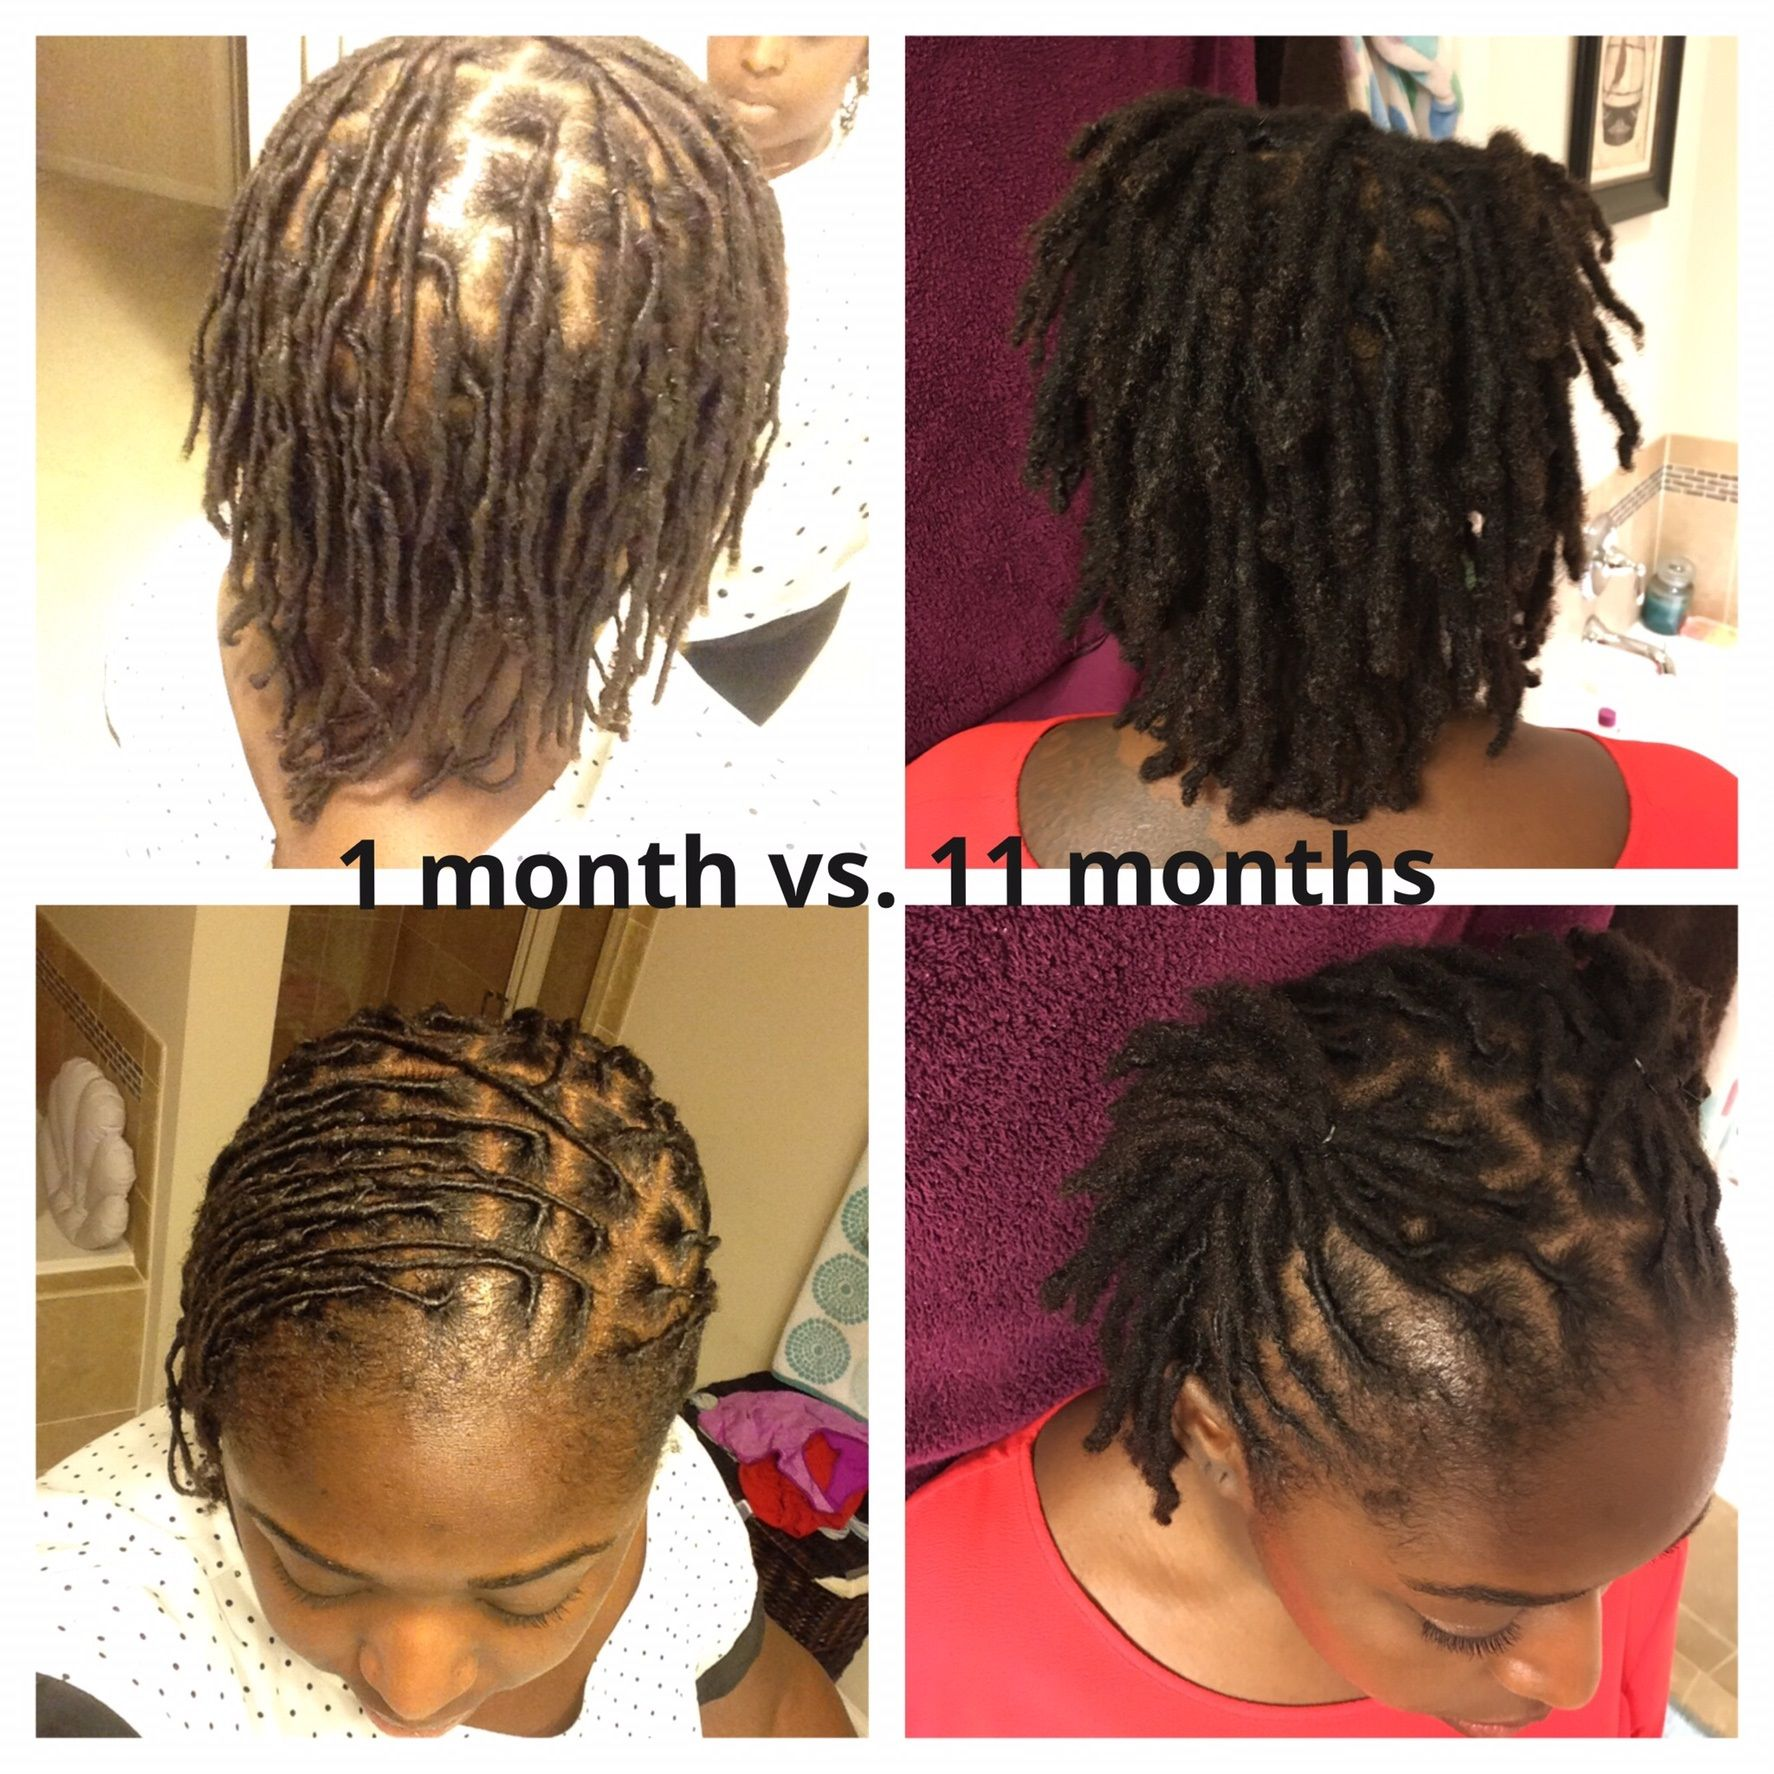 1 Month Vs 11 Months I Started With Very Fine Hair And My Tresses Have Thickened Up Thanks To The Loc Proces Hair Styles Short Locs Hairstyles Locs Hairstyles